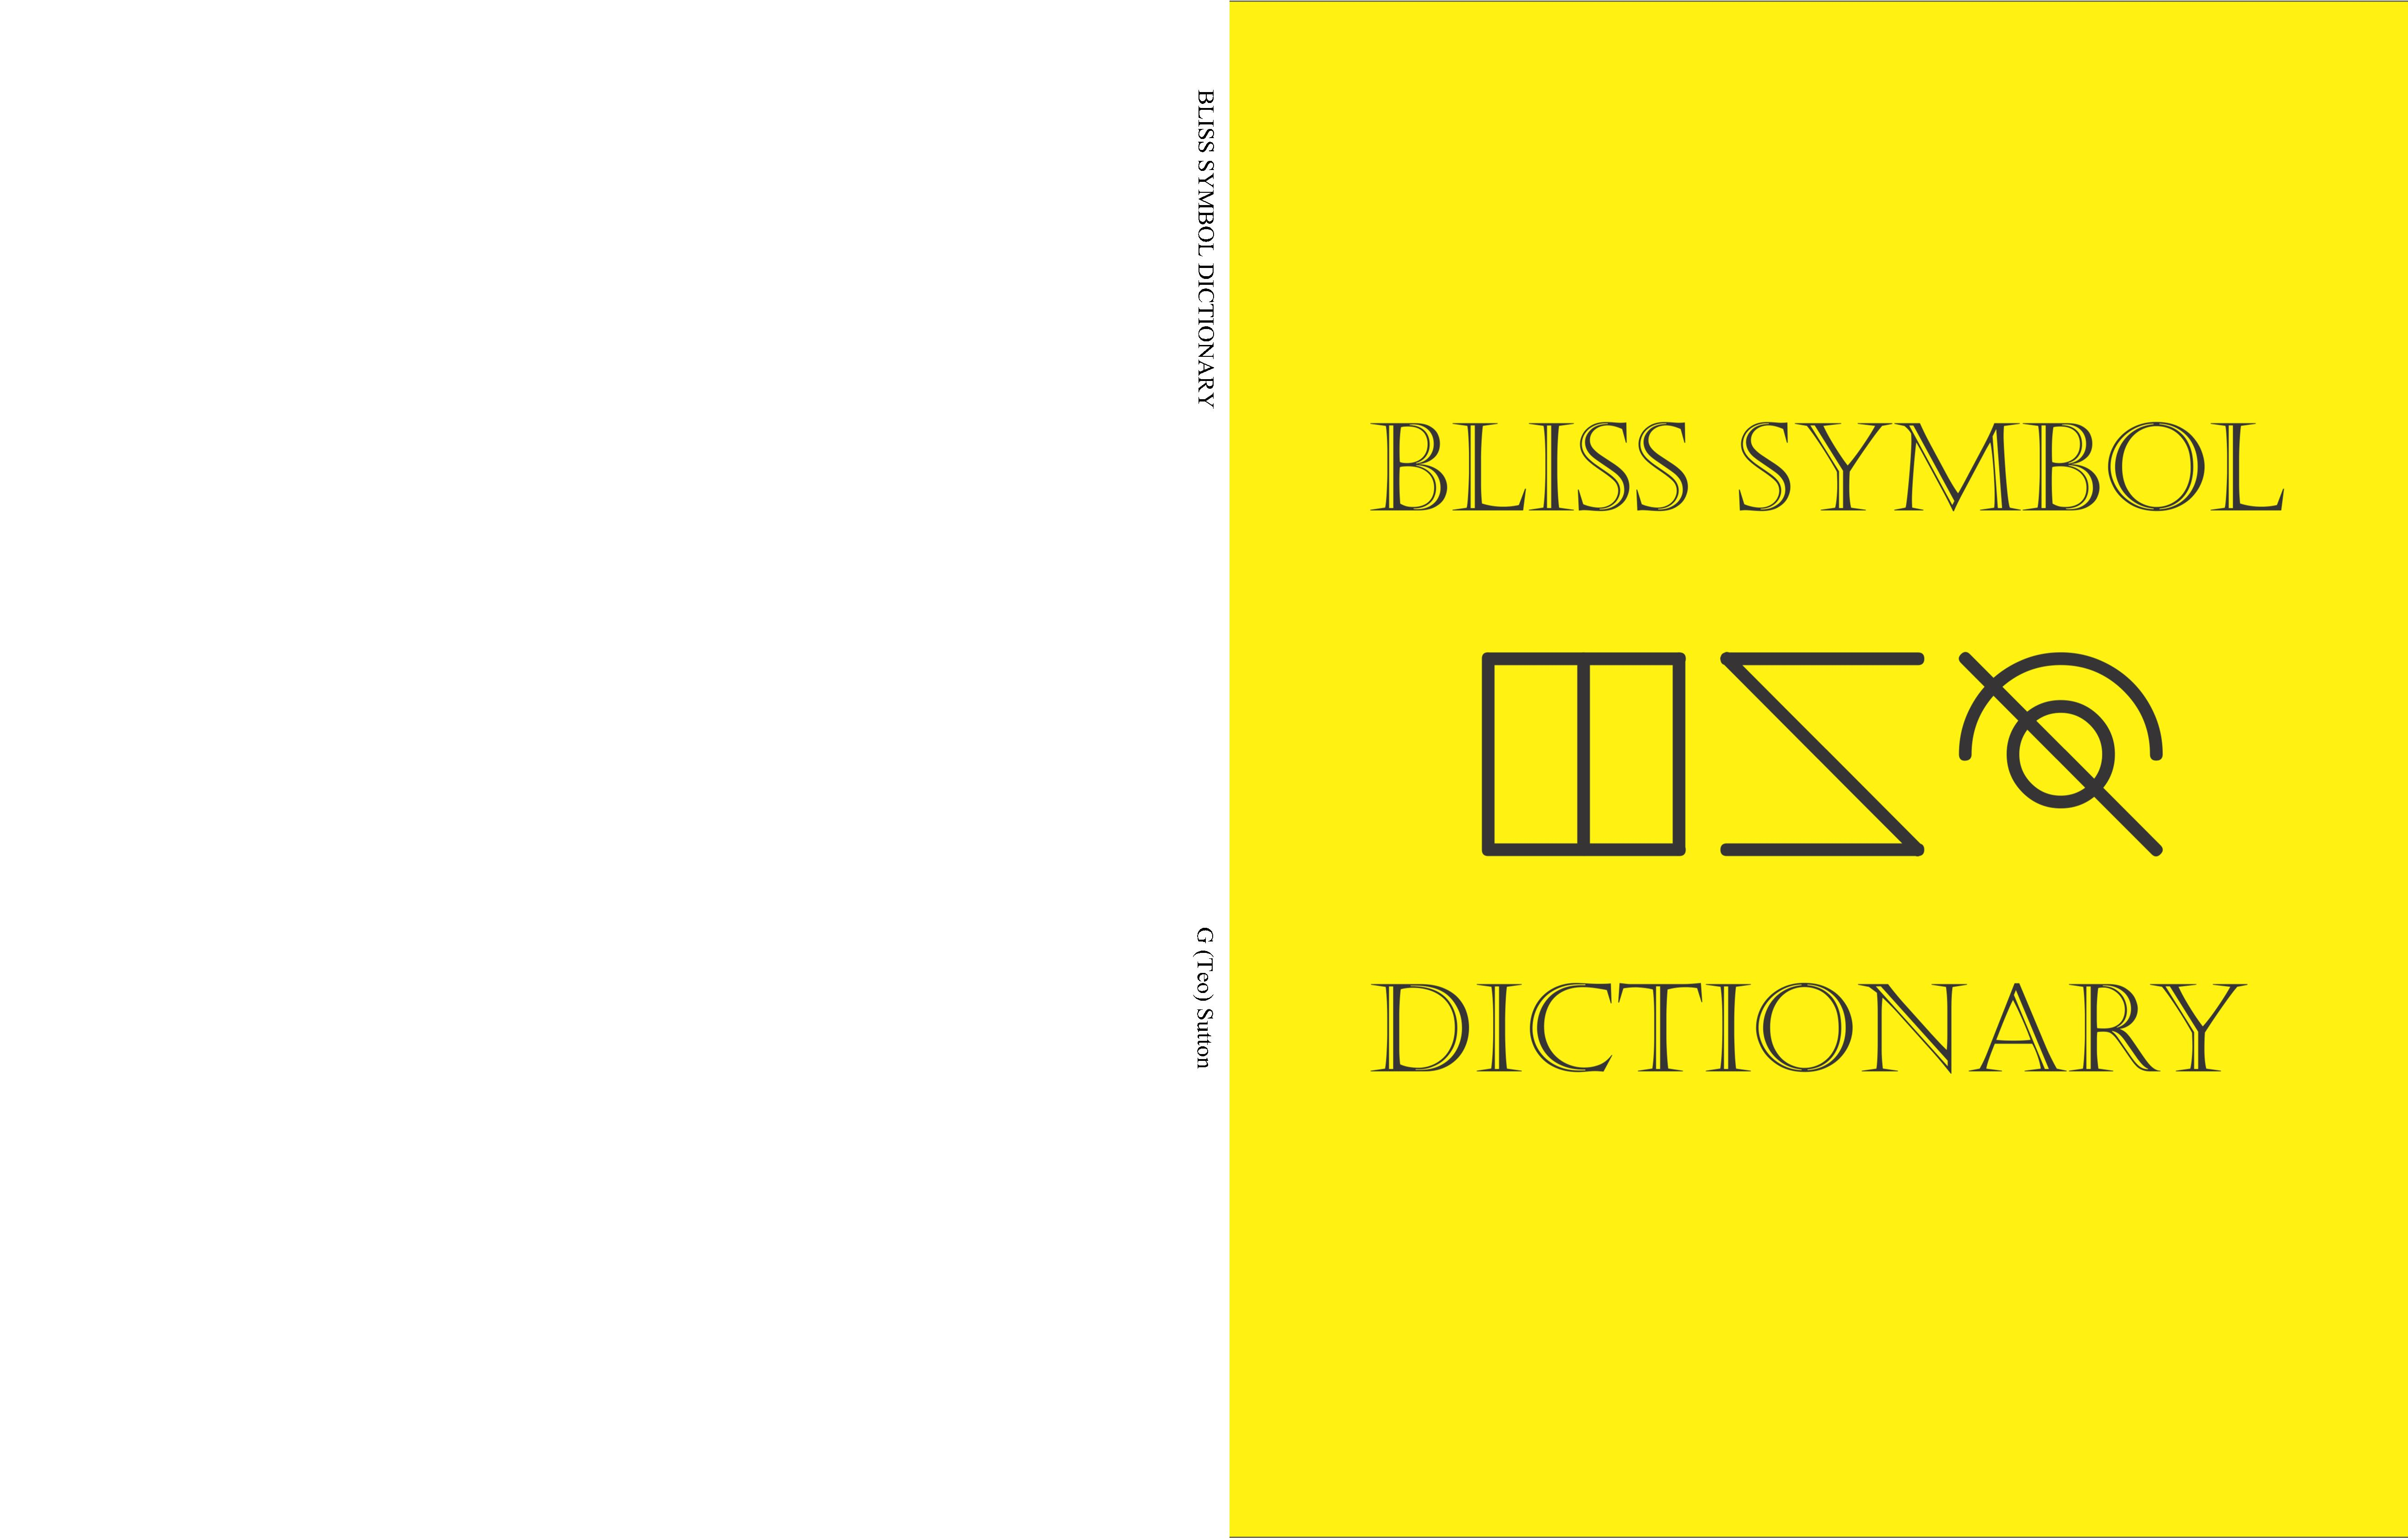 Bliss symbol dictionary by g teo sutton 1767 thebookpatch bliss symbol dictionary cover image biocorpaavc Choice Image